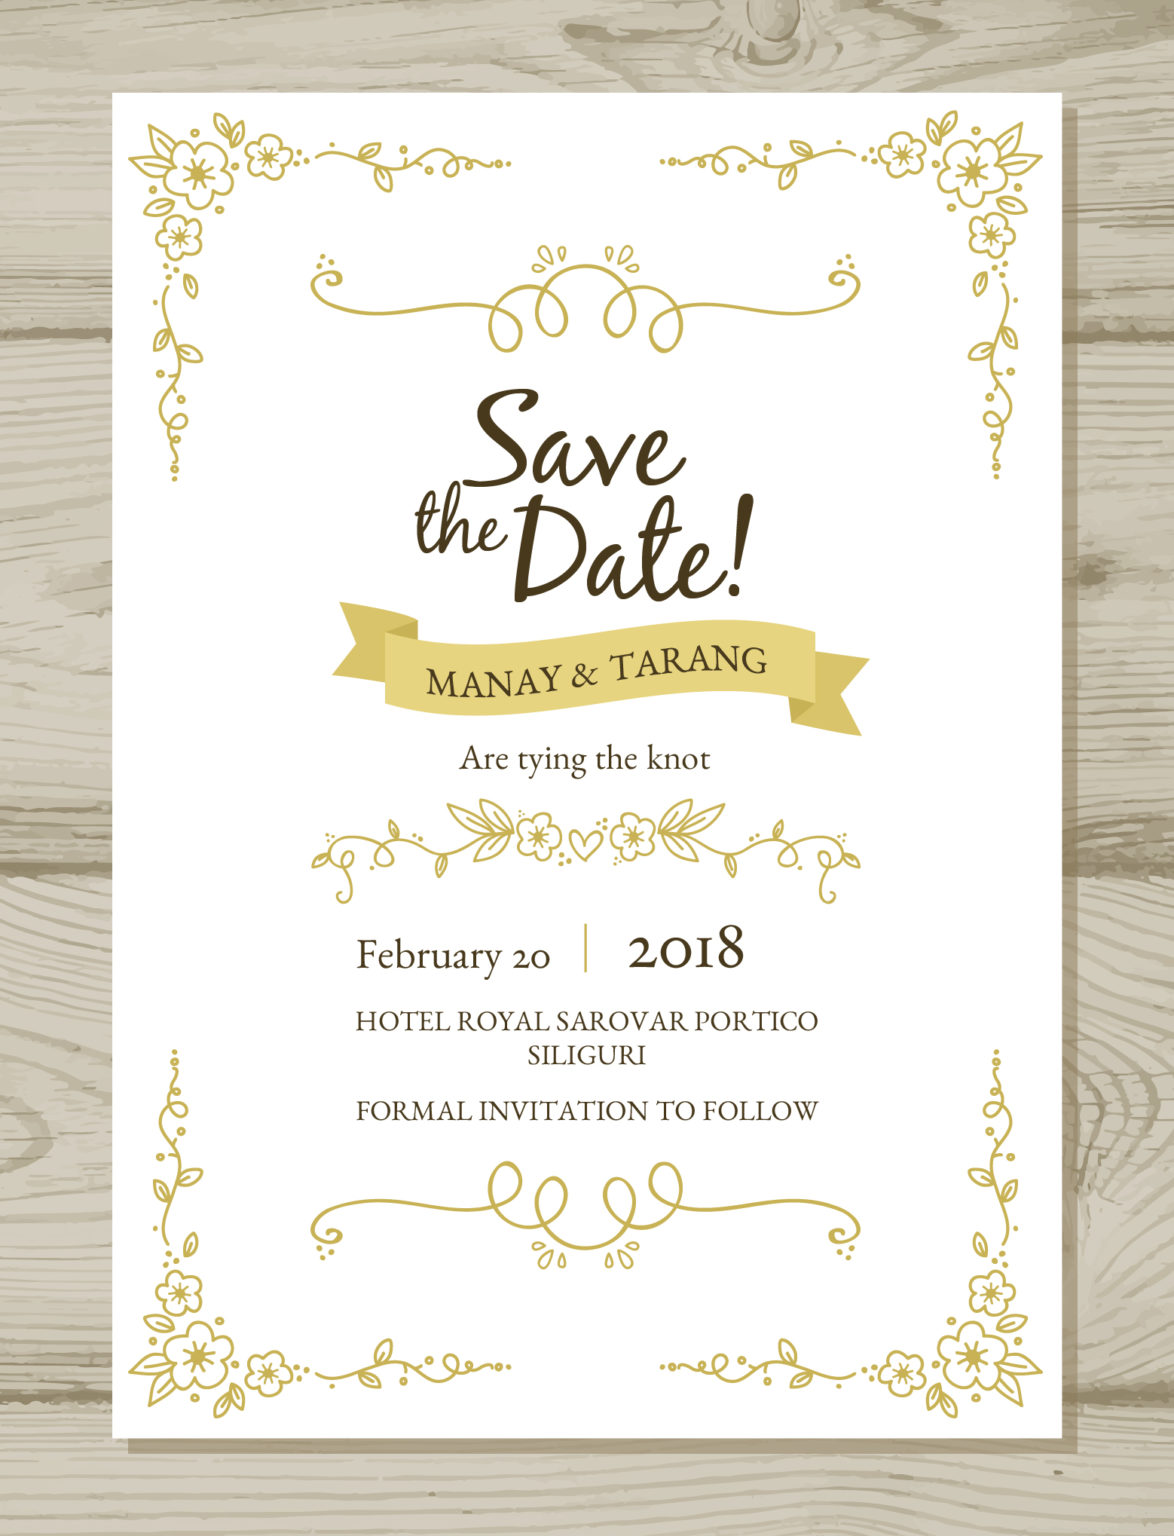 SAVE_THE_DATE-2-01